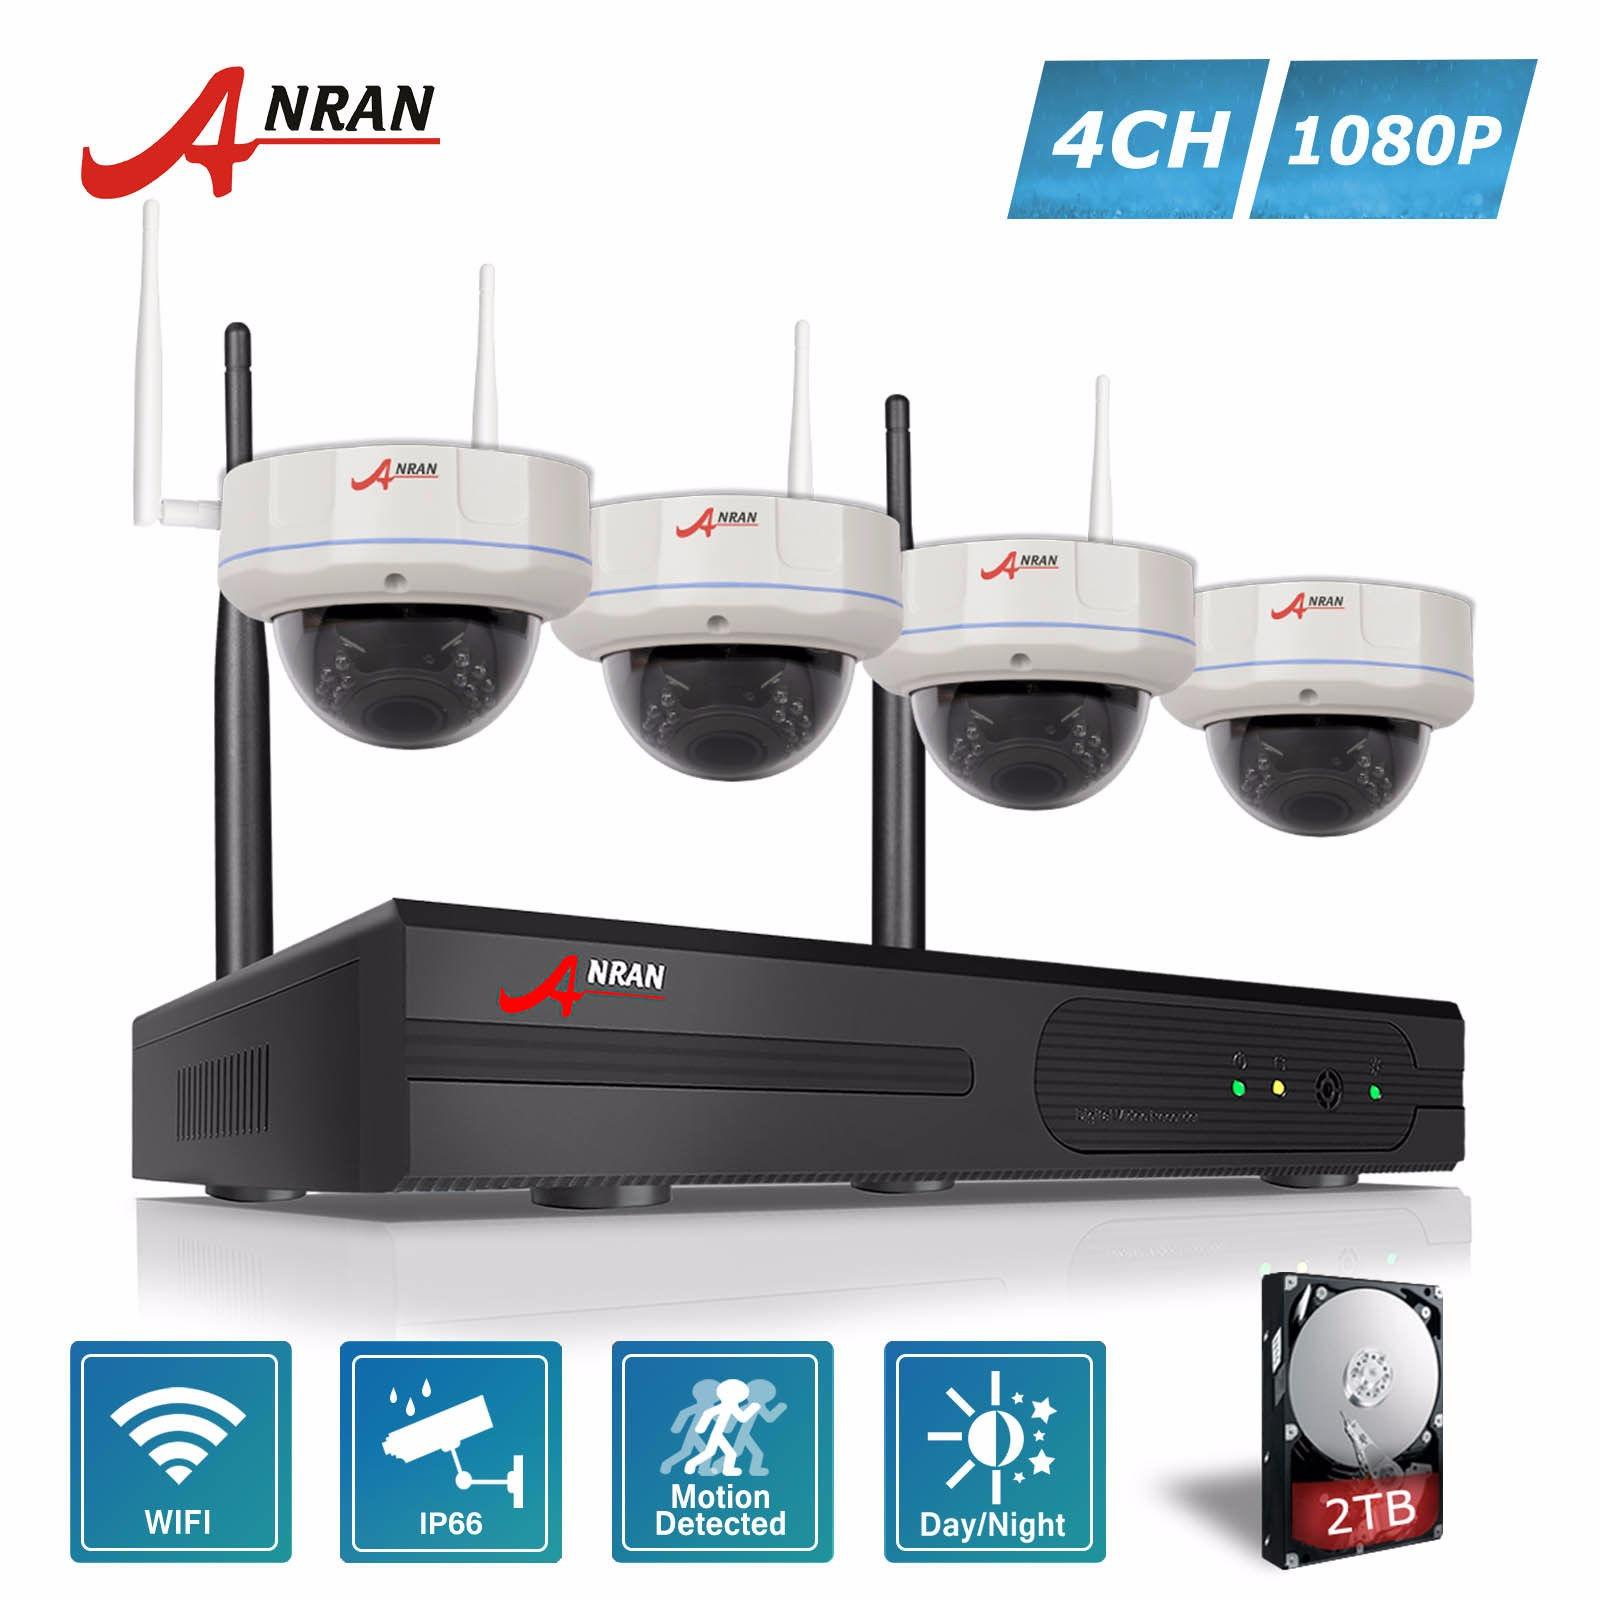 ANRAN 1080P 4CH Wireless NVR System with 4 Outdoor Indoor WIFI 1080P IP Cameras IR Dome Camera Plug and Play